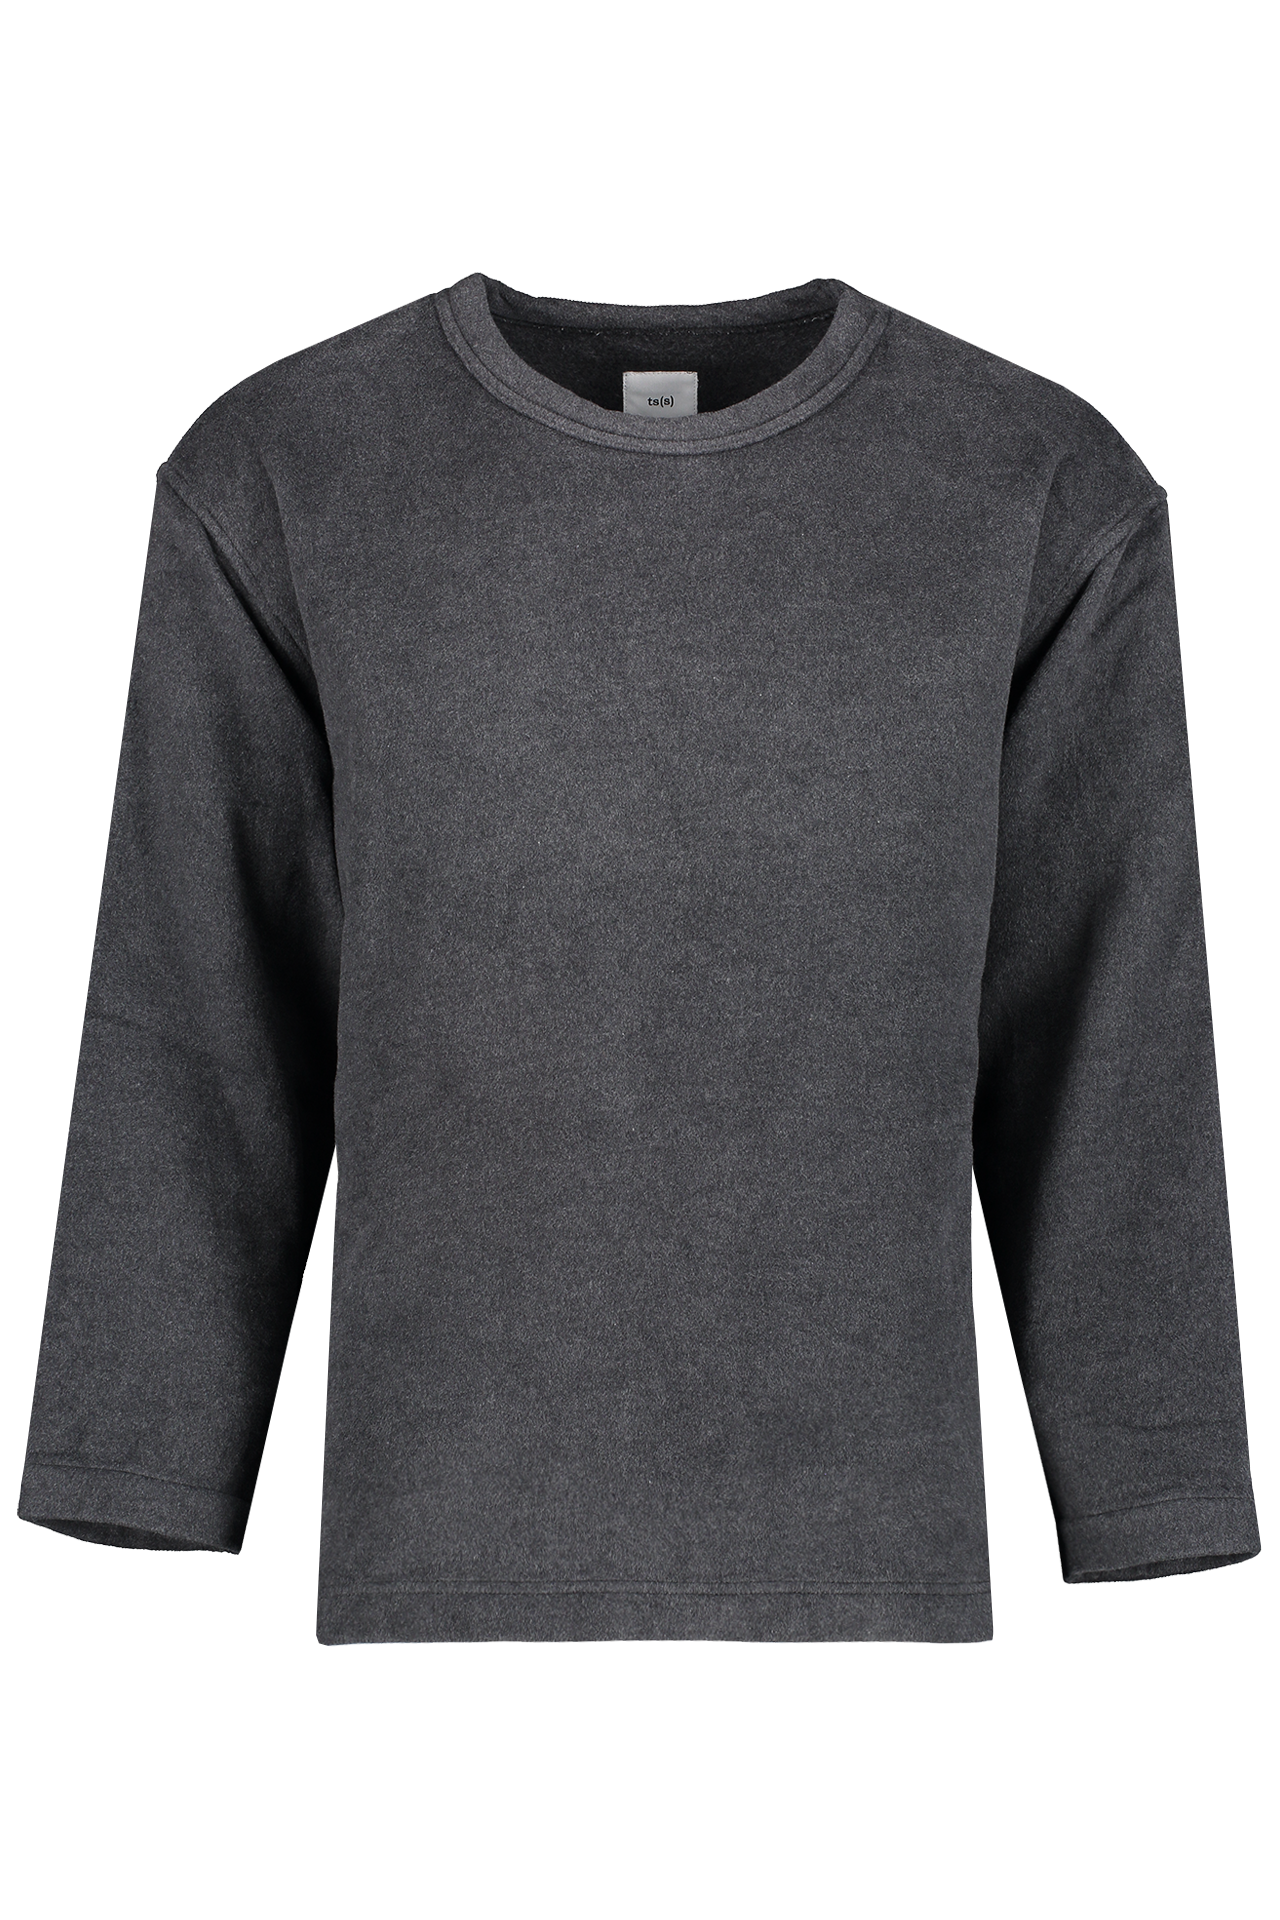 Front view image of TS(S) Long Sleeve T-Shirt Grey